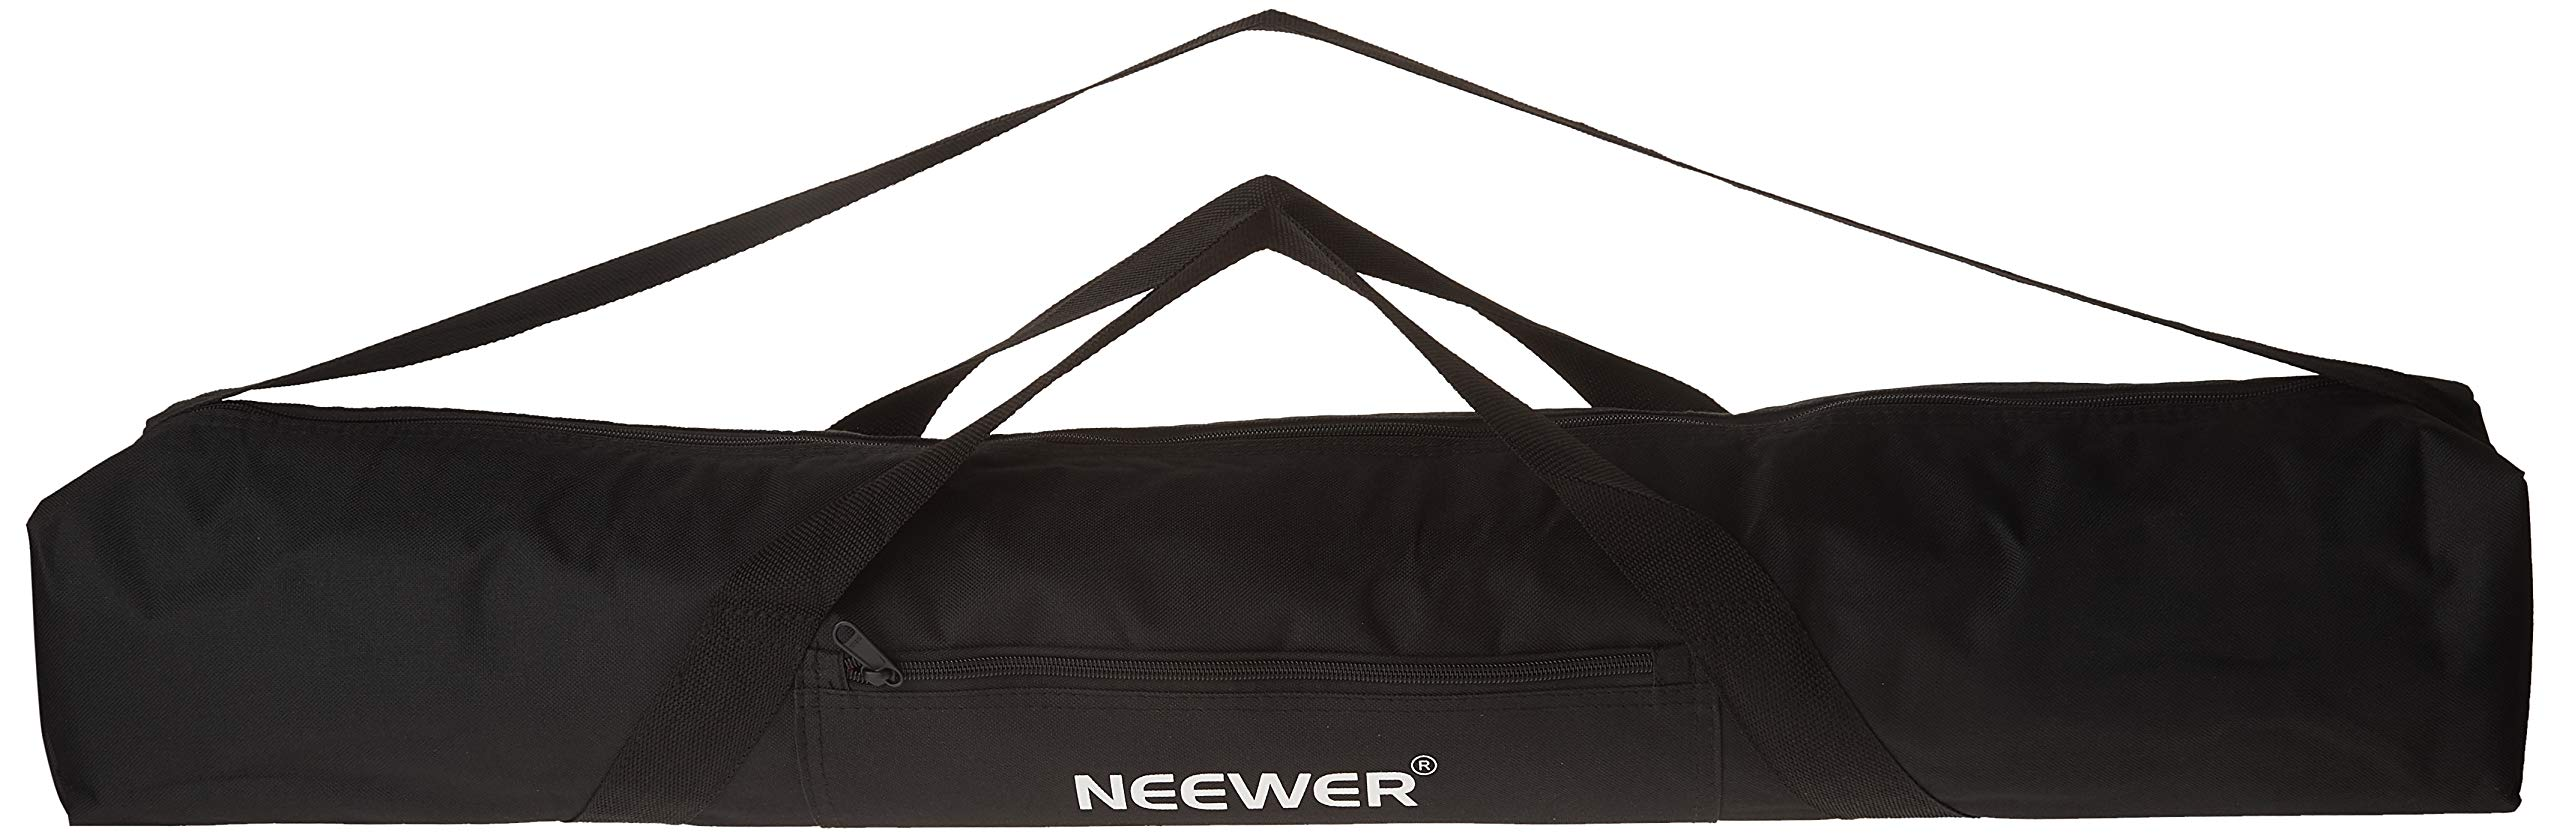 Neewer 36''x5''x5'' / 92cmX12cmX12cm Heavy Duty Photographic Tripod Carrying Case with Strap for Light Stands, Boom Stand, Tripod by Neewer